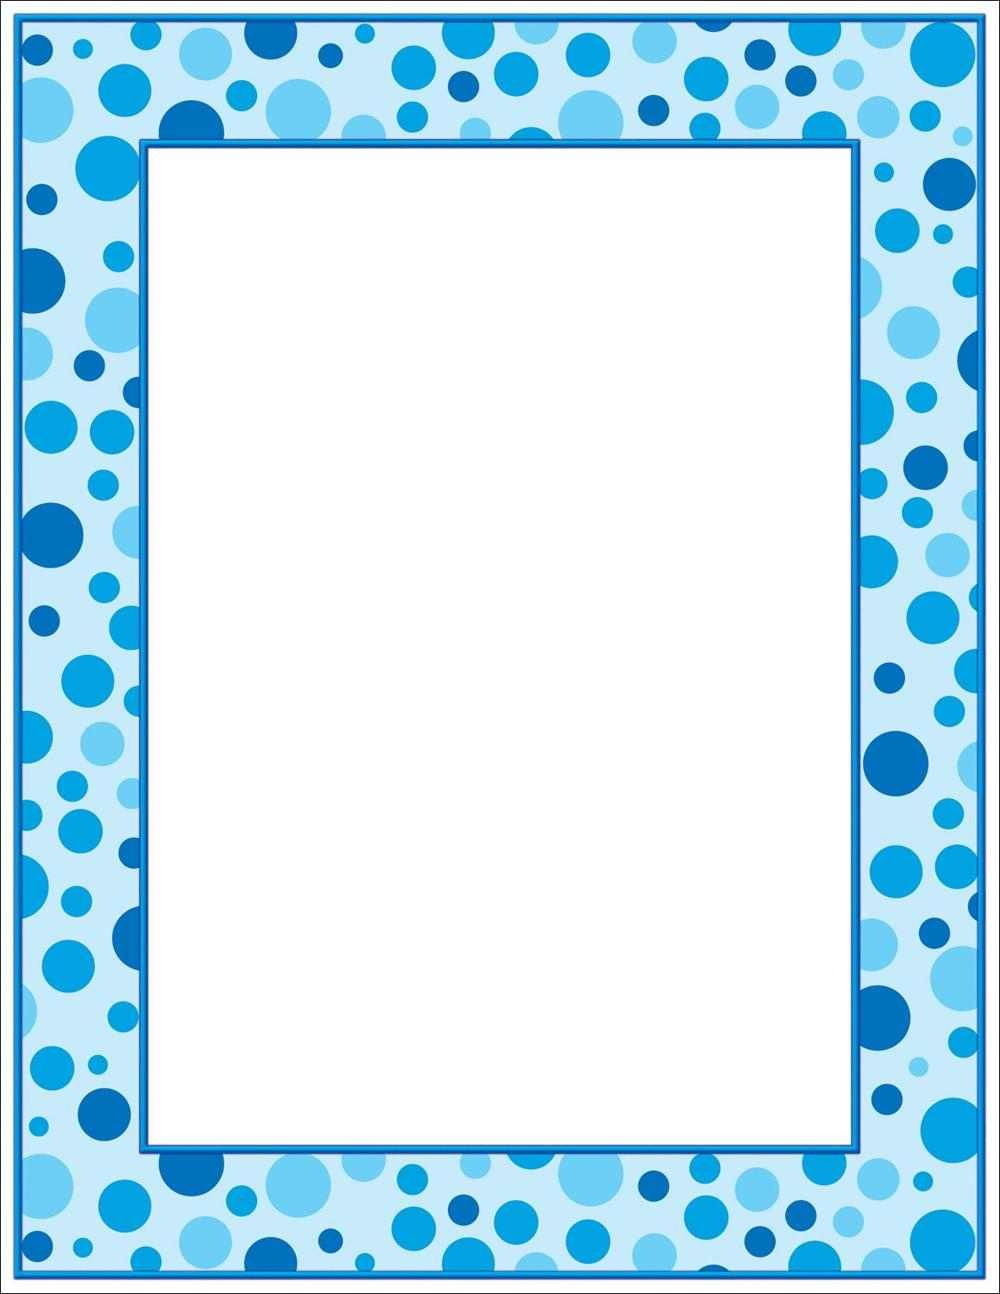 blue polka dot border polka dot paper printable polka dot printable blue polka dots blue polka dot border polka dot paper